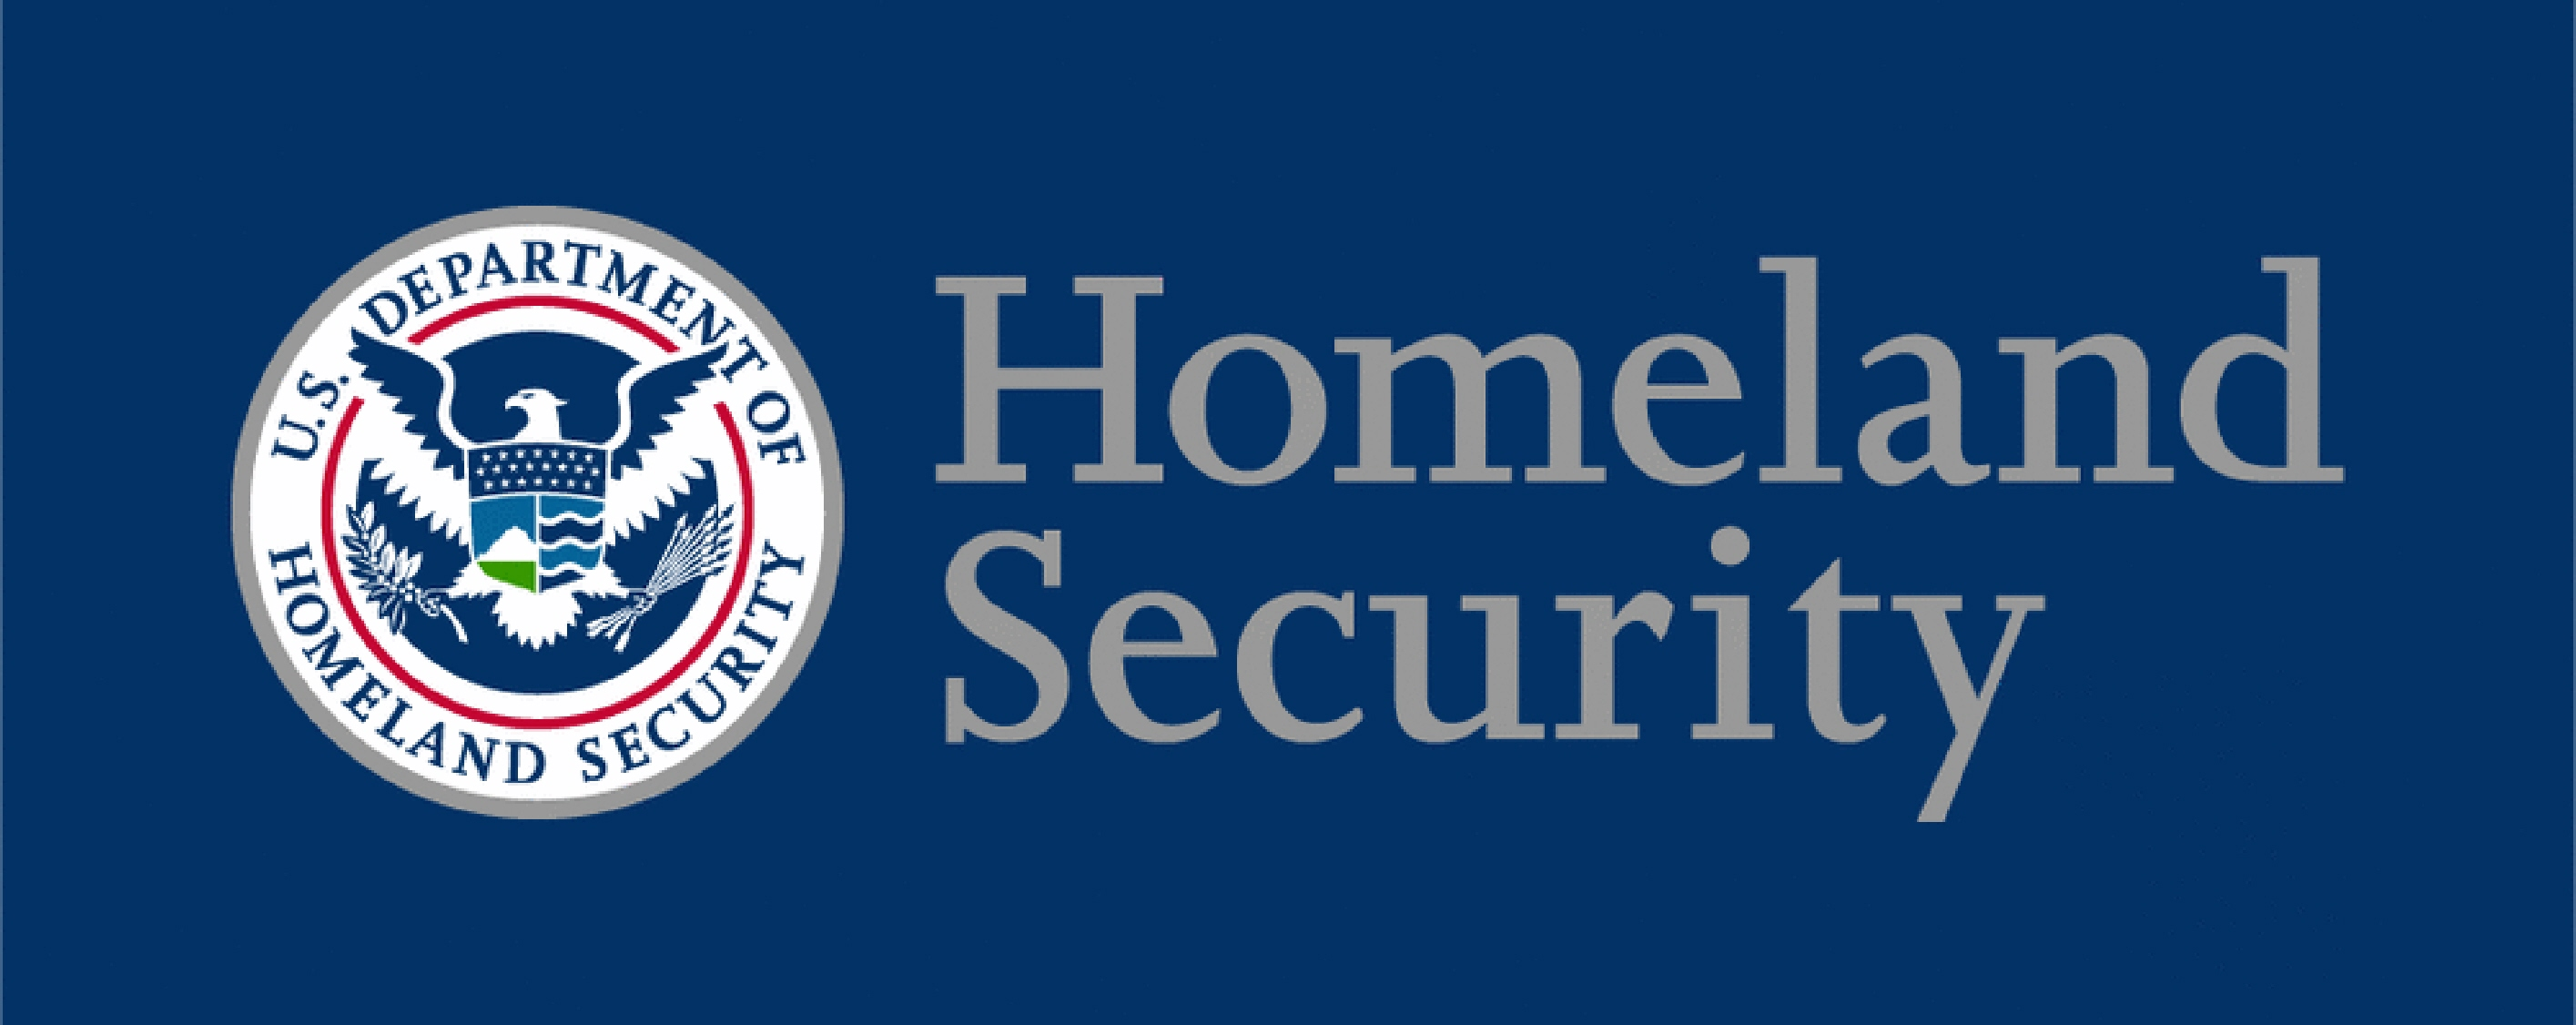 the department of homeland security Learn about working at us department of homeland security join linkedin today for free see who you know at us department of homeland security, leverage your.